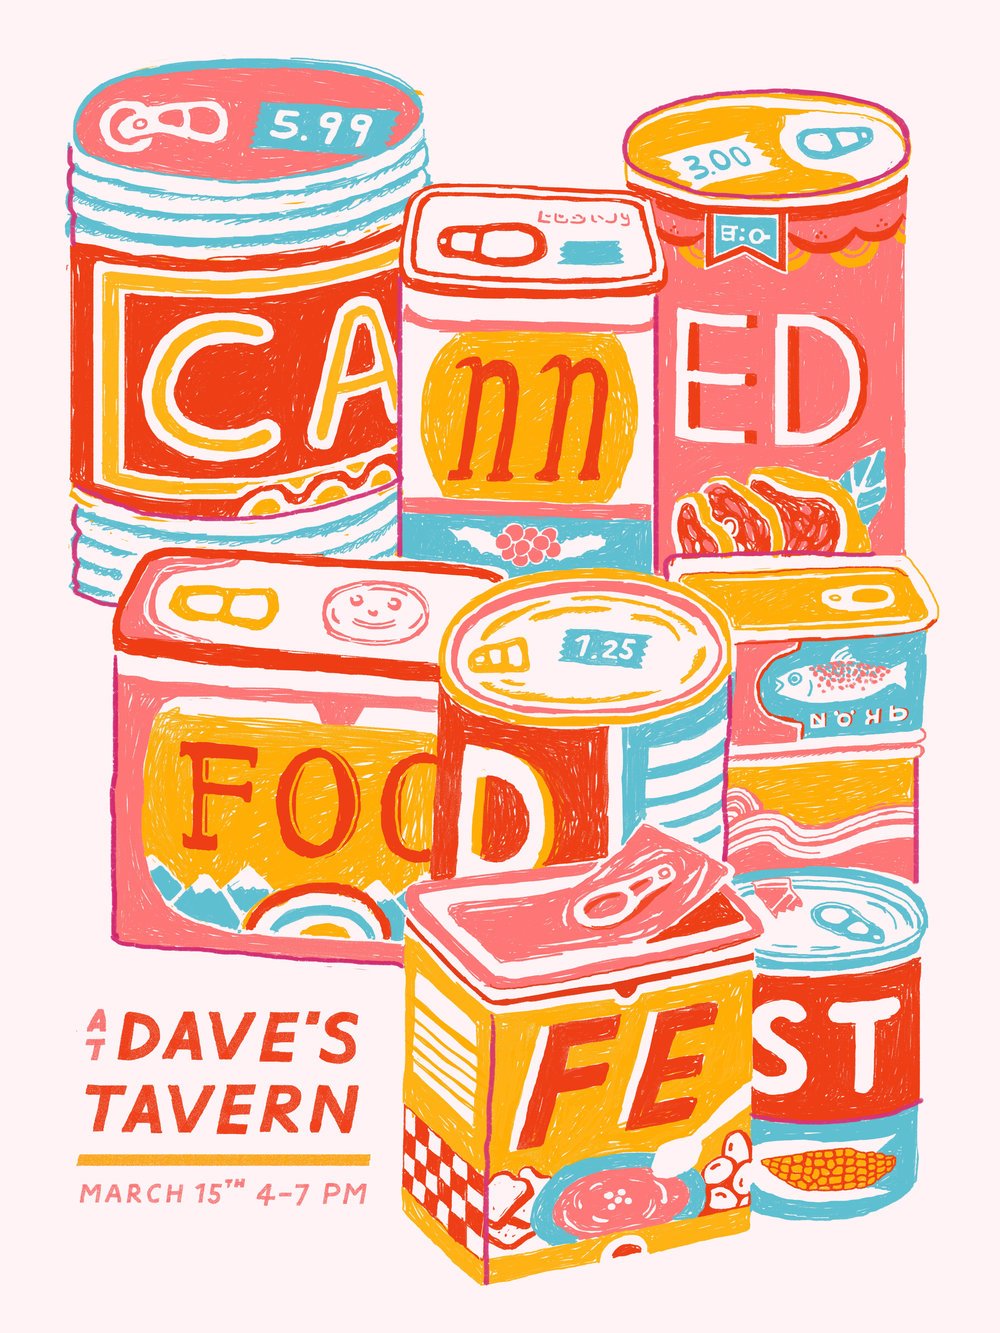 Canned Food Fest Poster